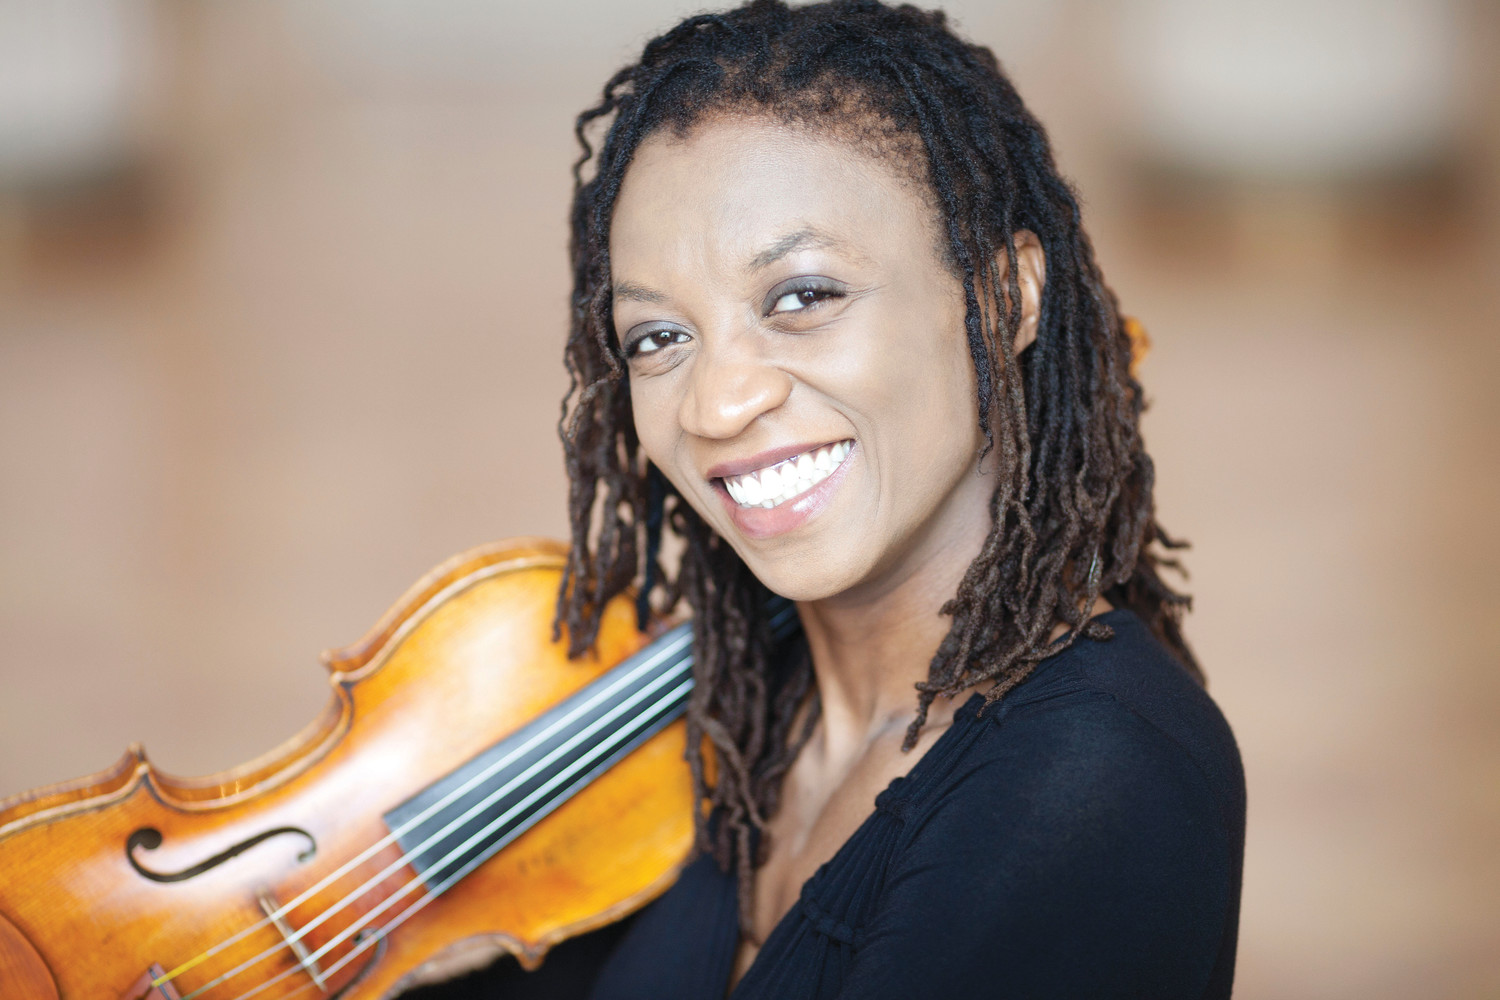 Guest artist Tai Murray will perform during the Symphony's Mendelssohn portion of the concert.